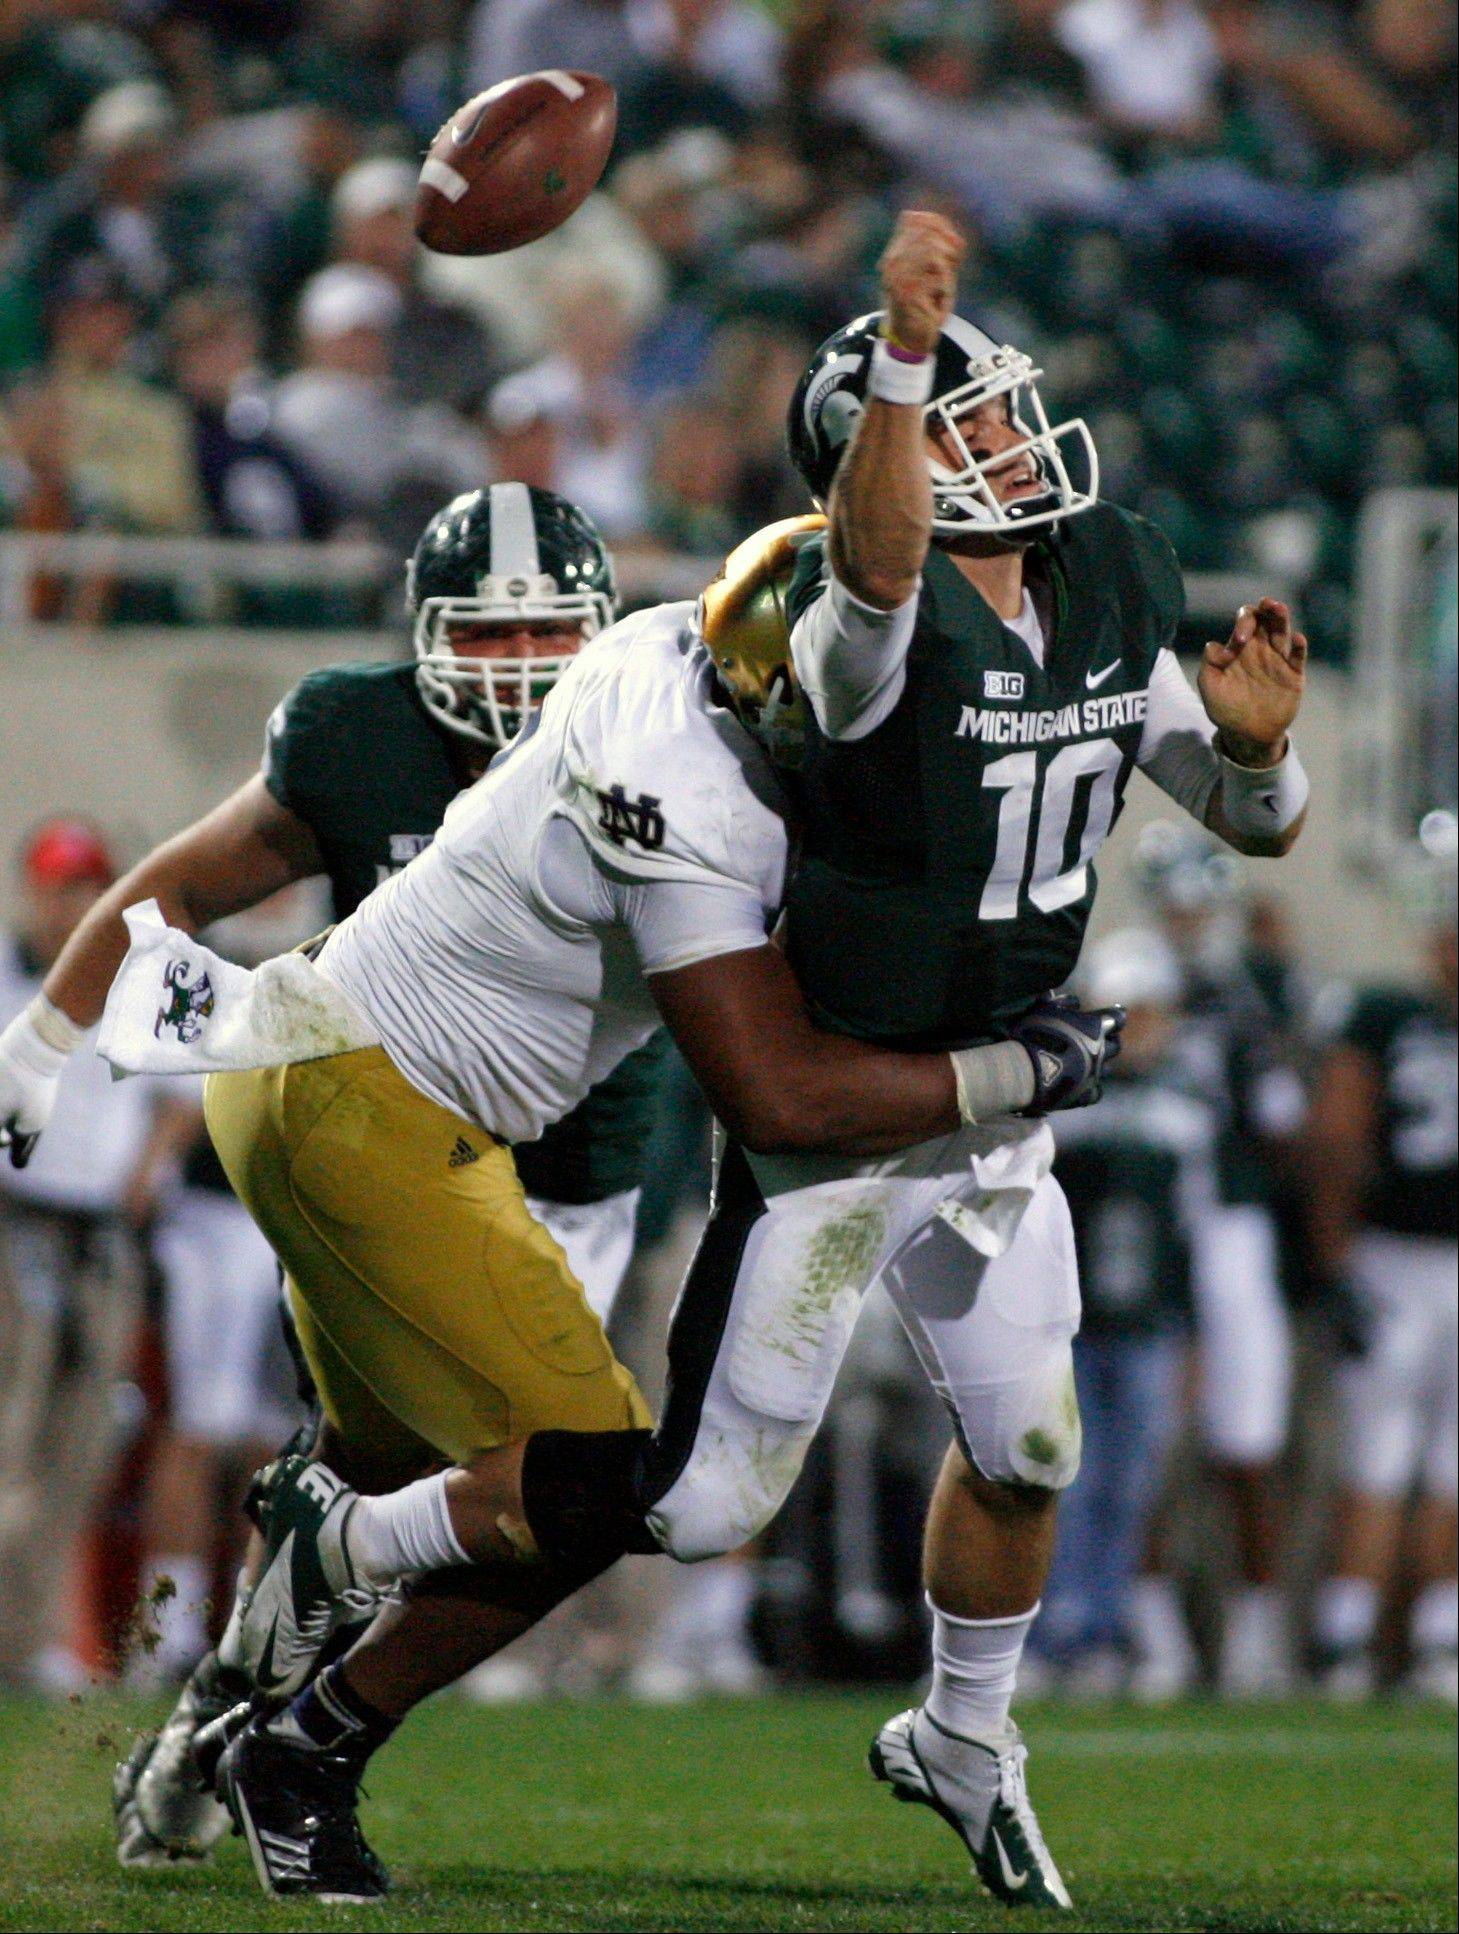 Michigan State quarterback Andrew Maxwell fumbles the ball as he is hit by Notre Dame's T.J. Jones during the fourth quarter last Saturday in East Lansing, Mich.